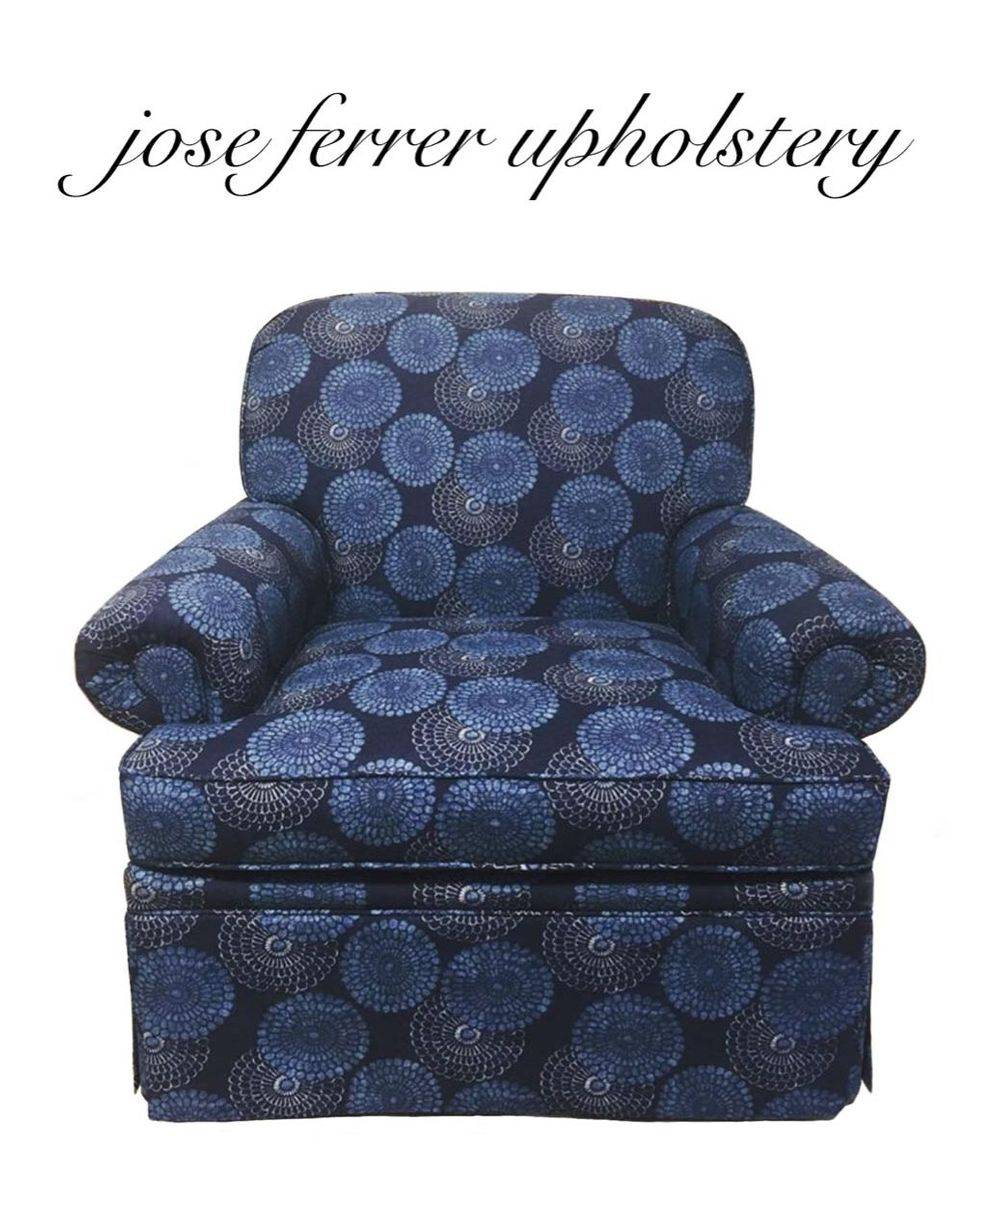 modern size chair redone in blue furniture fabric with round design pattern